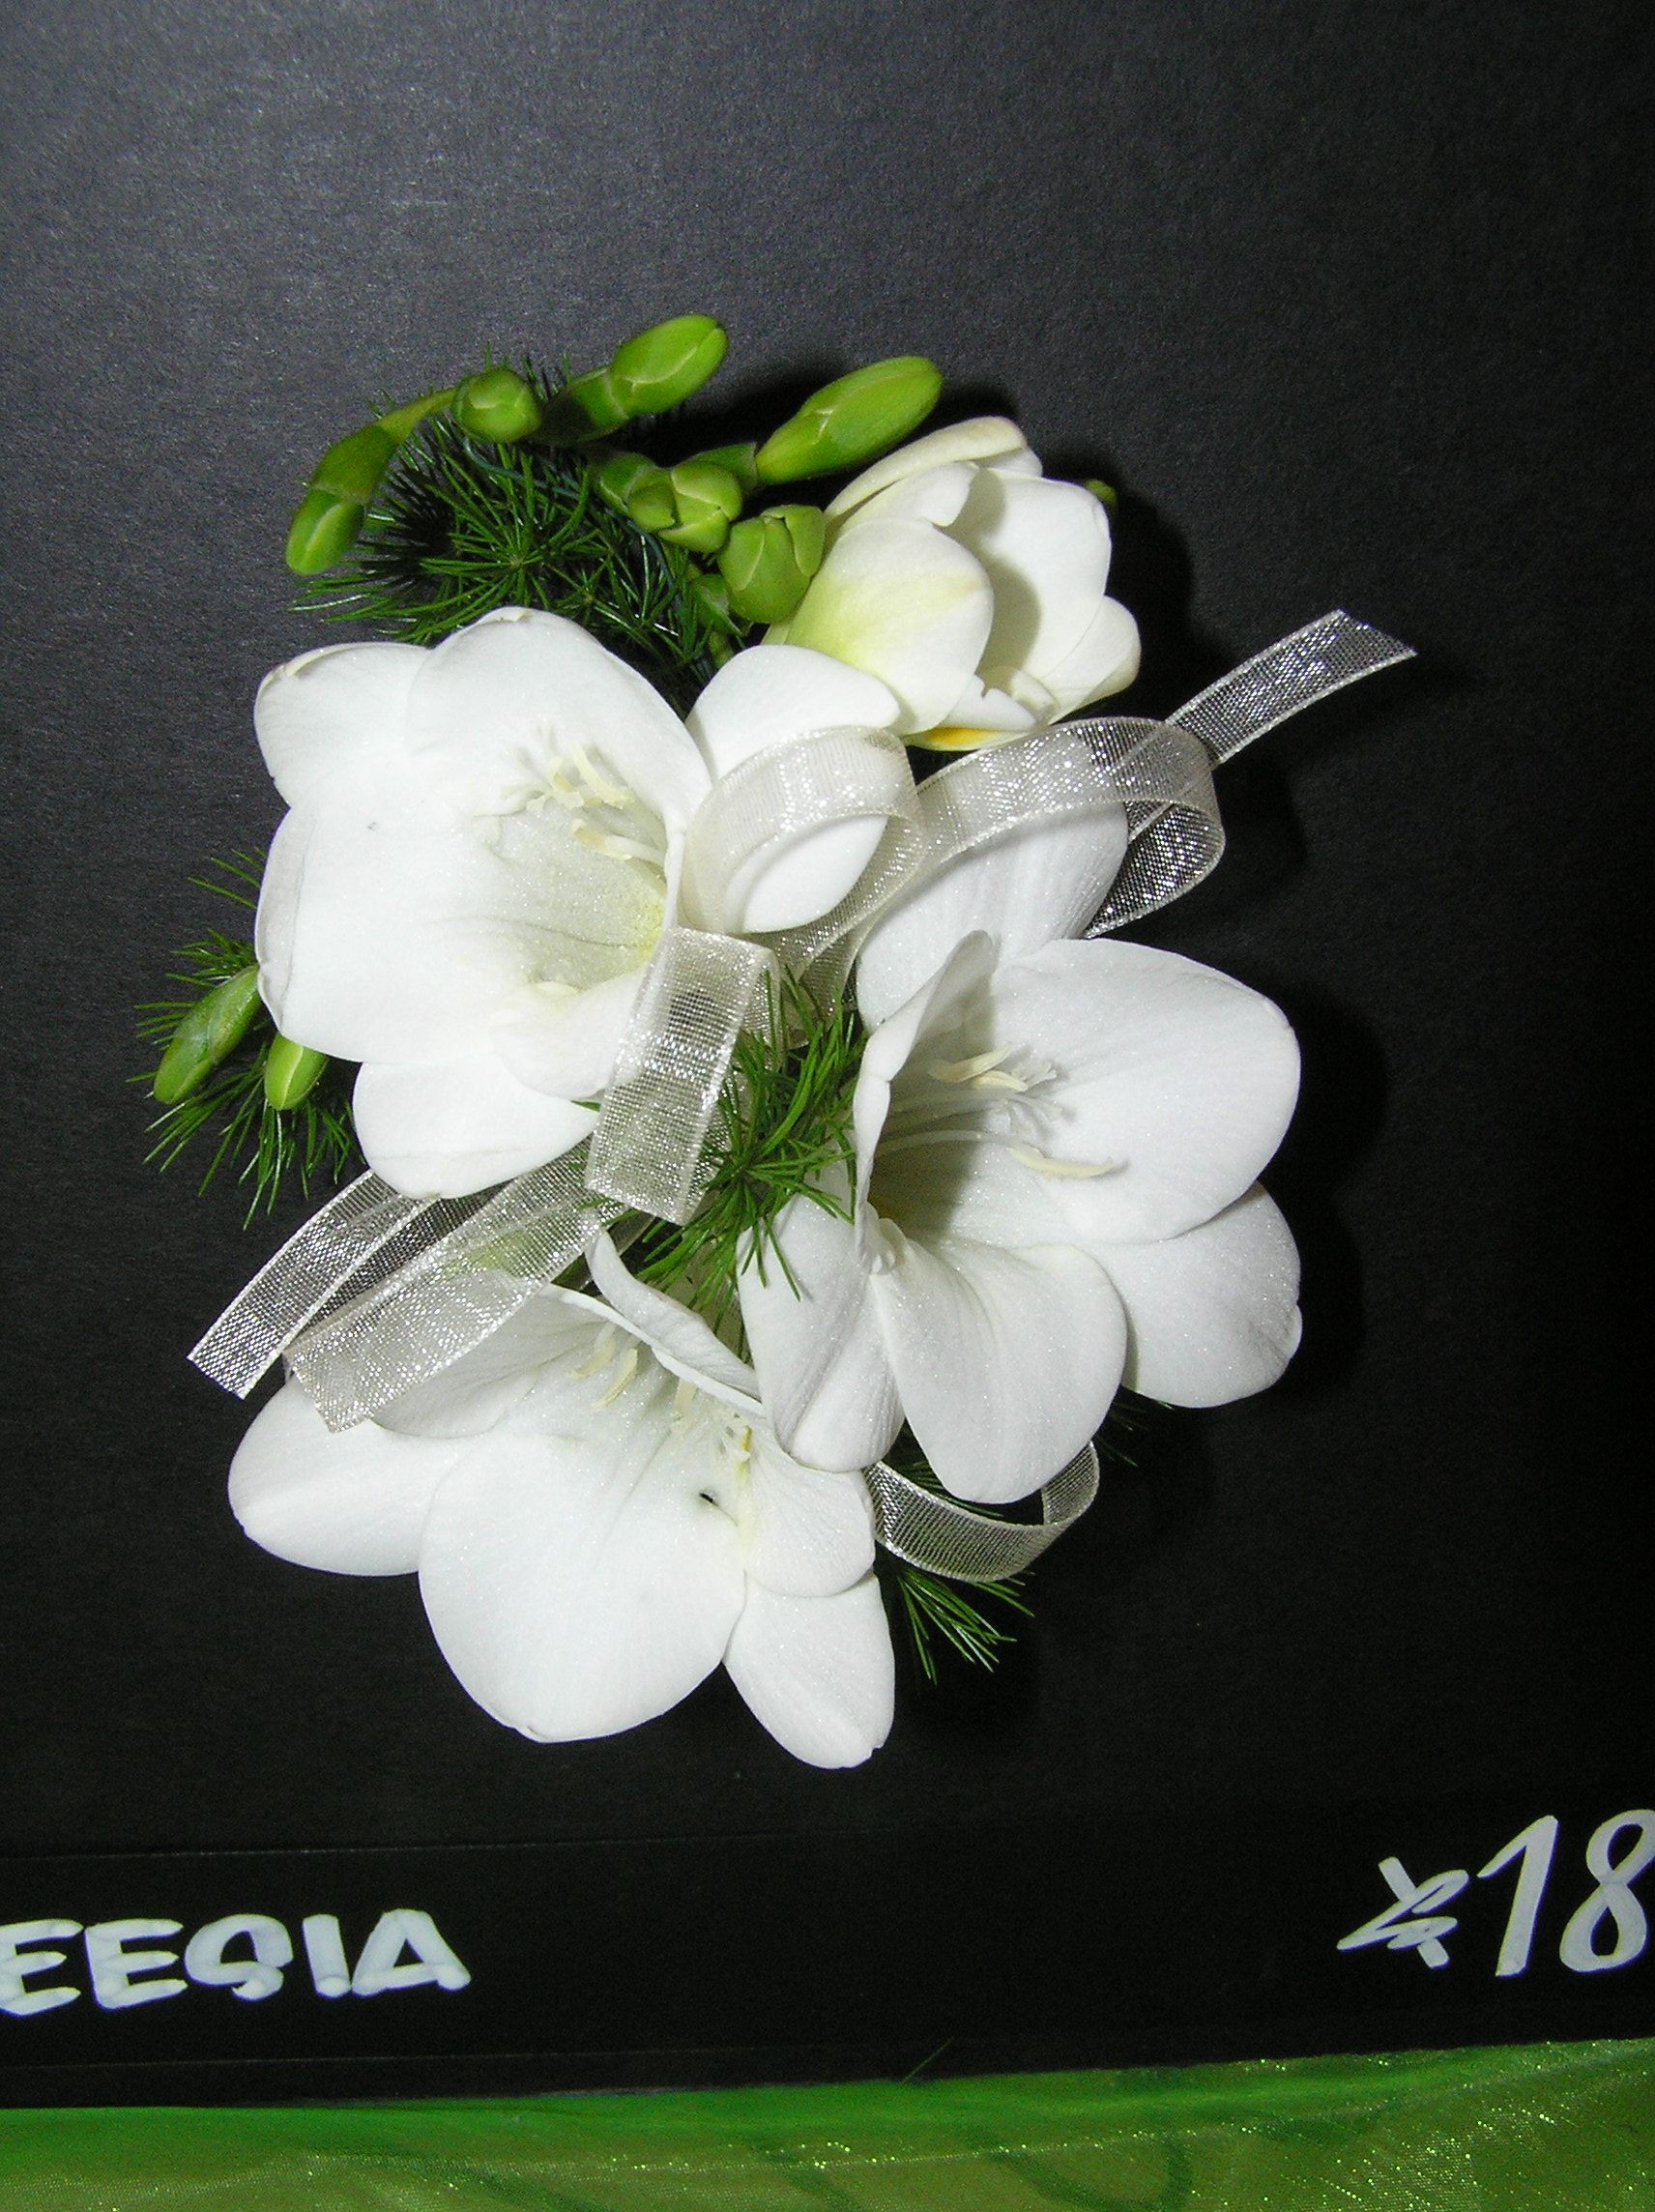 Wrist Corsage - Fragrant White freesia with white sheer ribbon